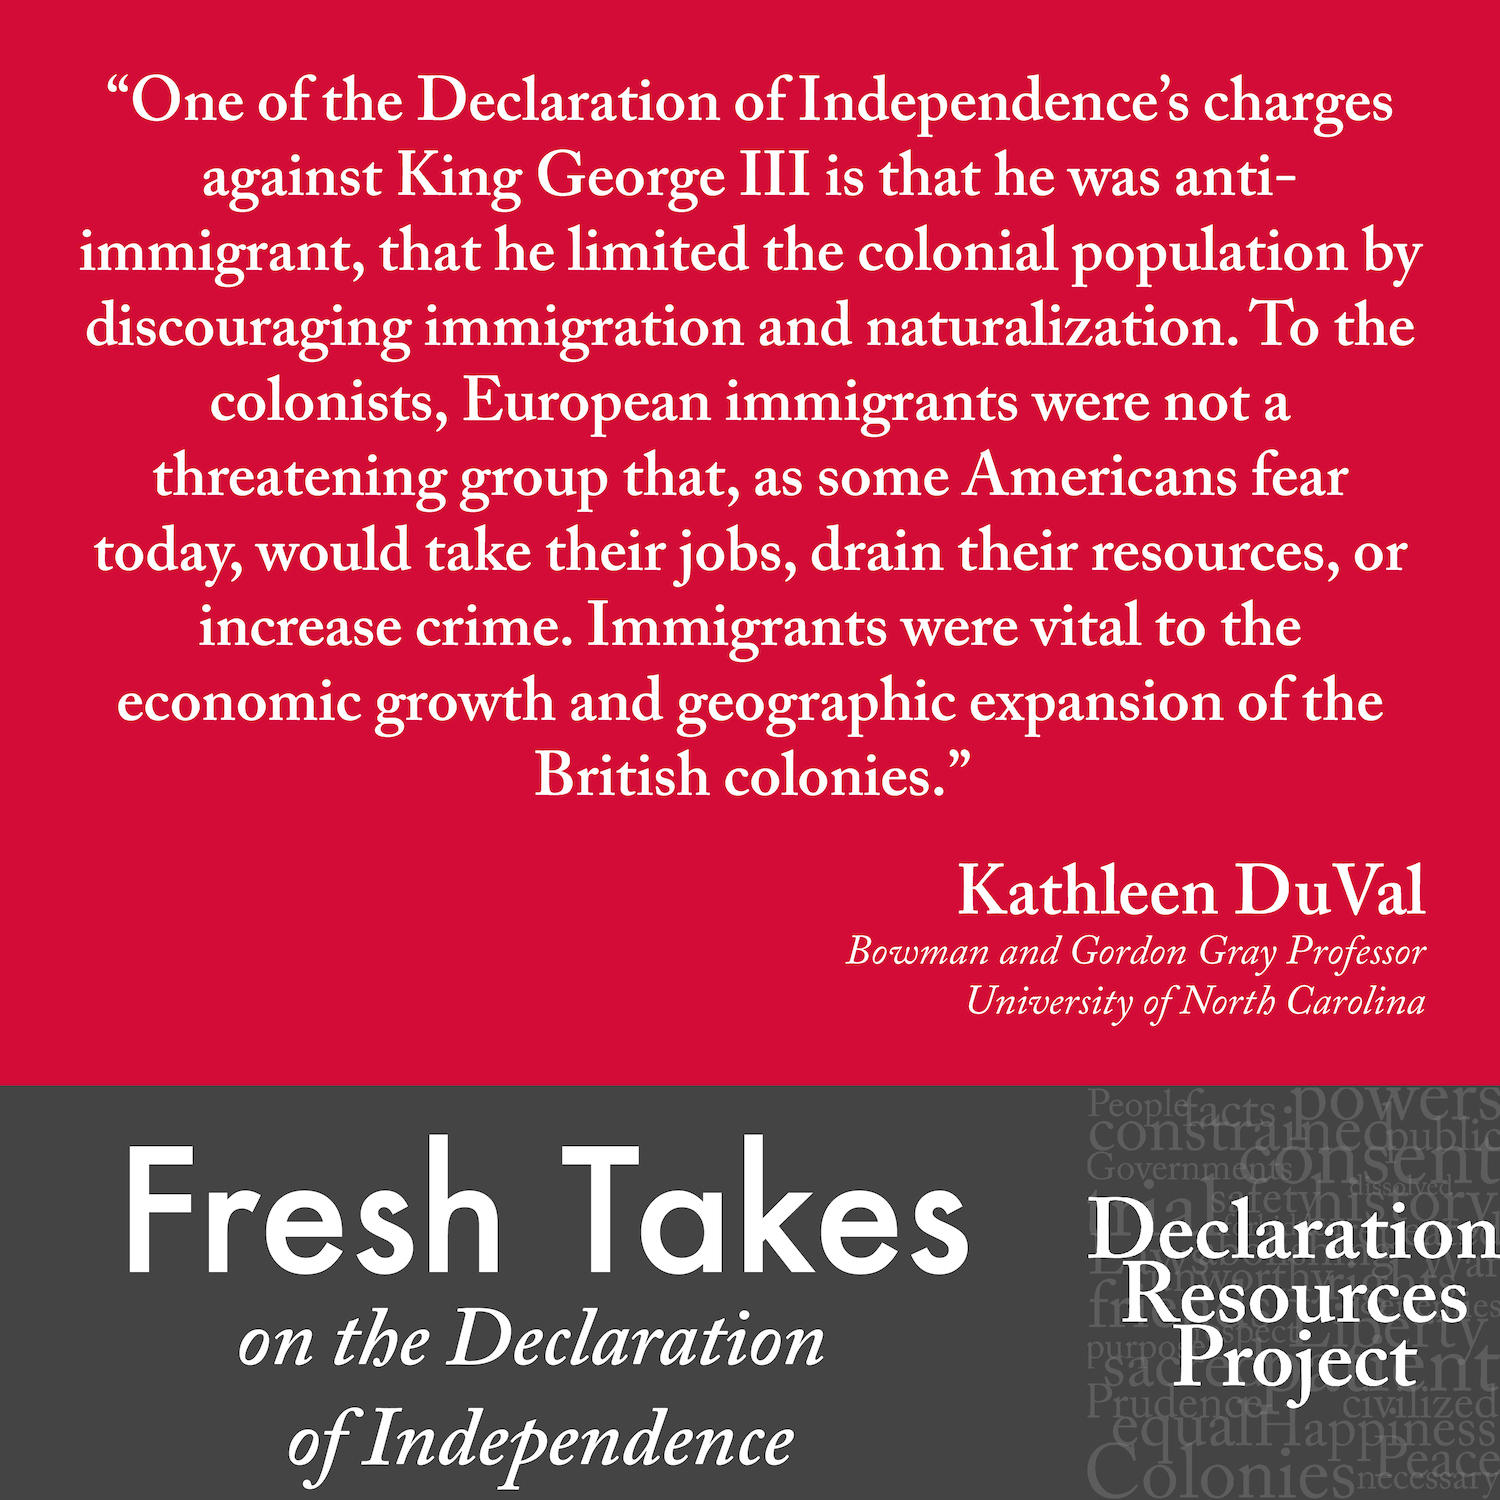 Kathleen DuVal's Fresh Take on the Declaration of Independence